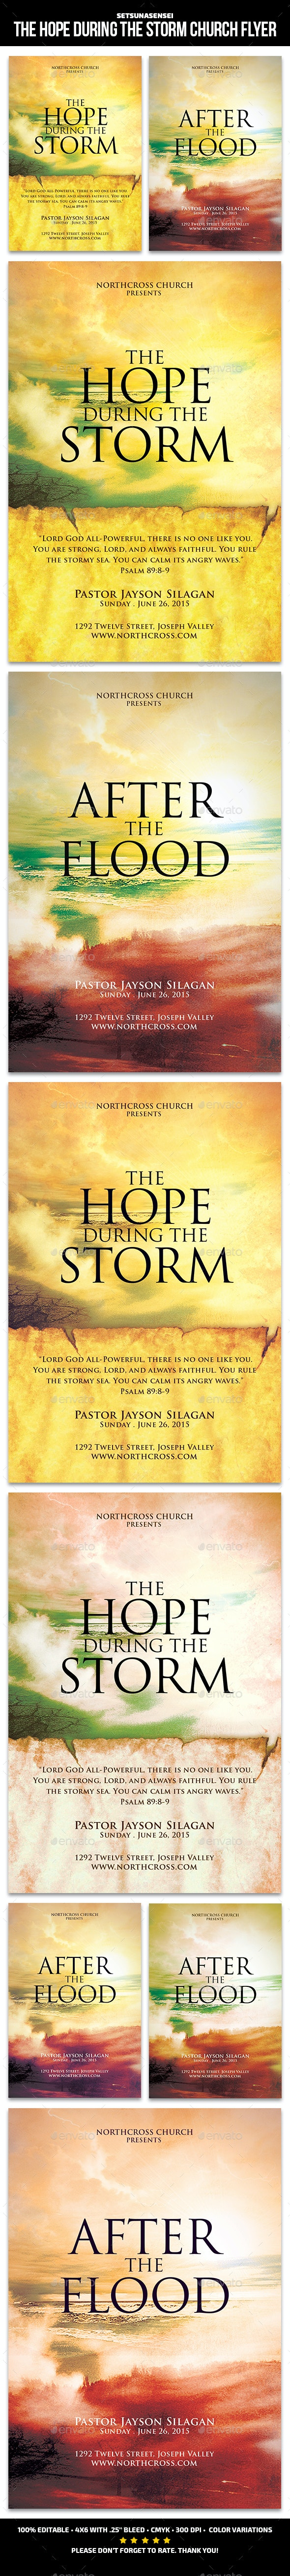 The Hope During the Storm Church Flyer - Church Flyers